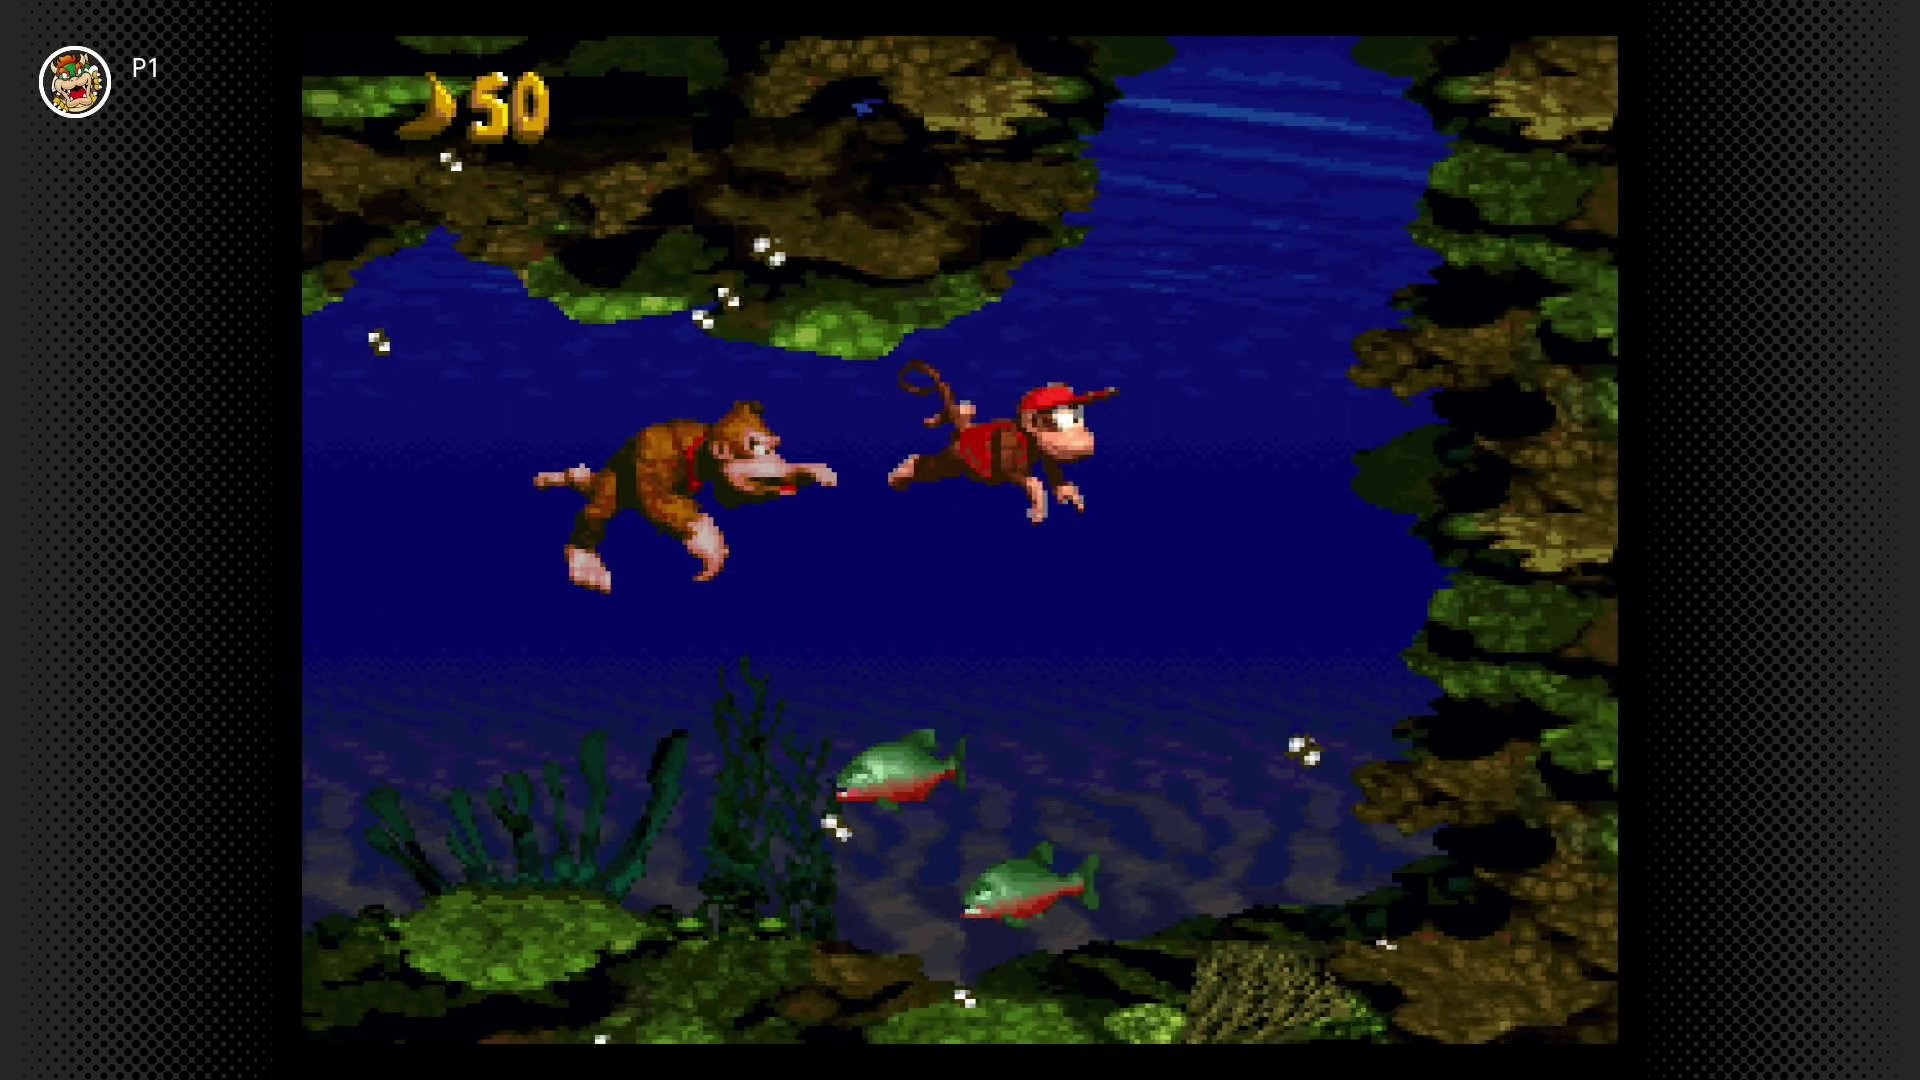 Nintendo Switch Online's July lineup includes Donkey Kong Country